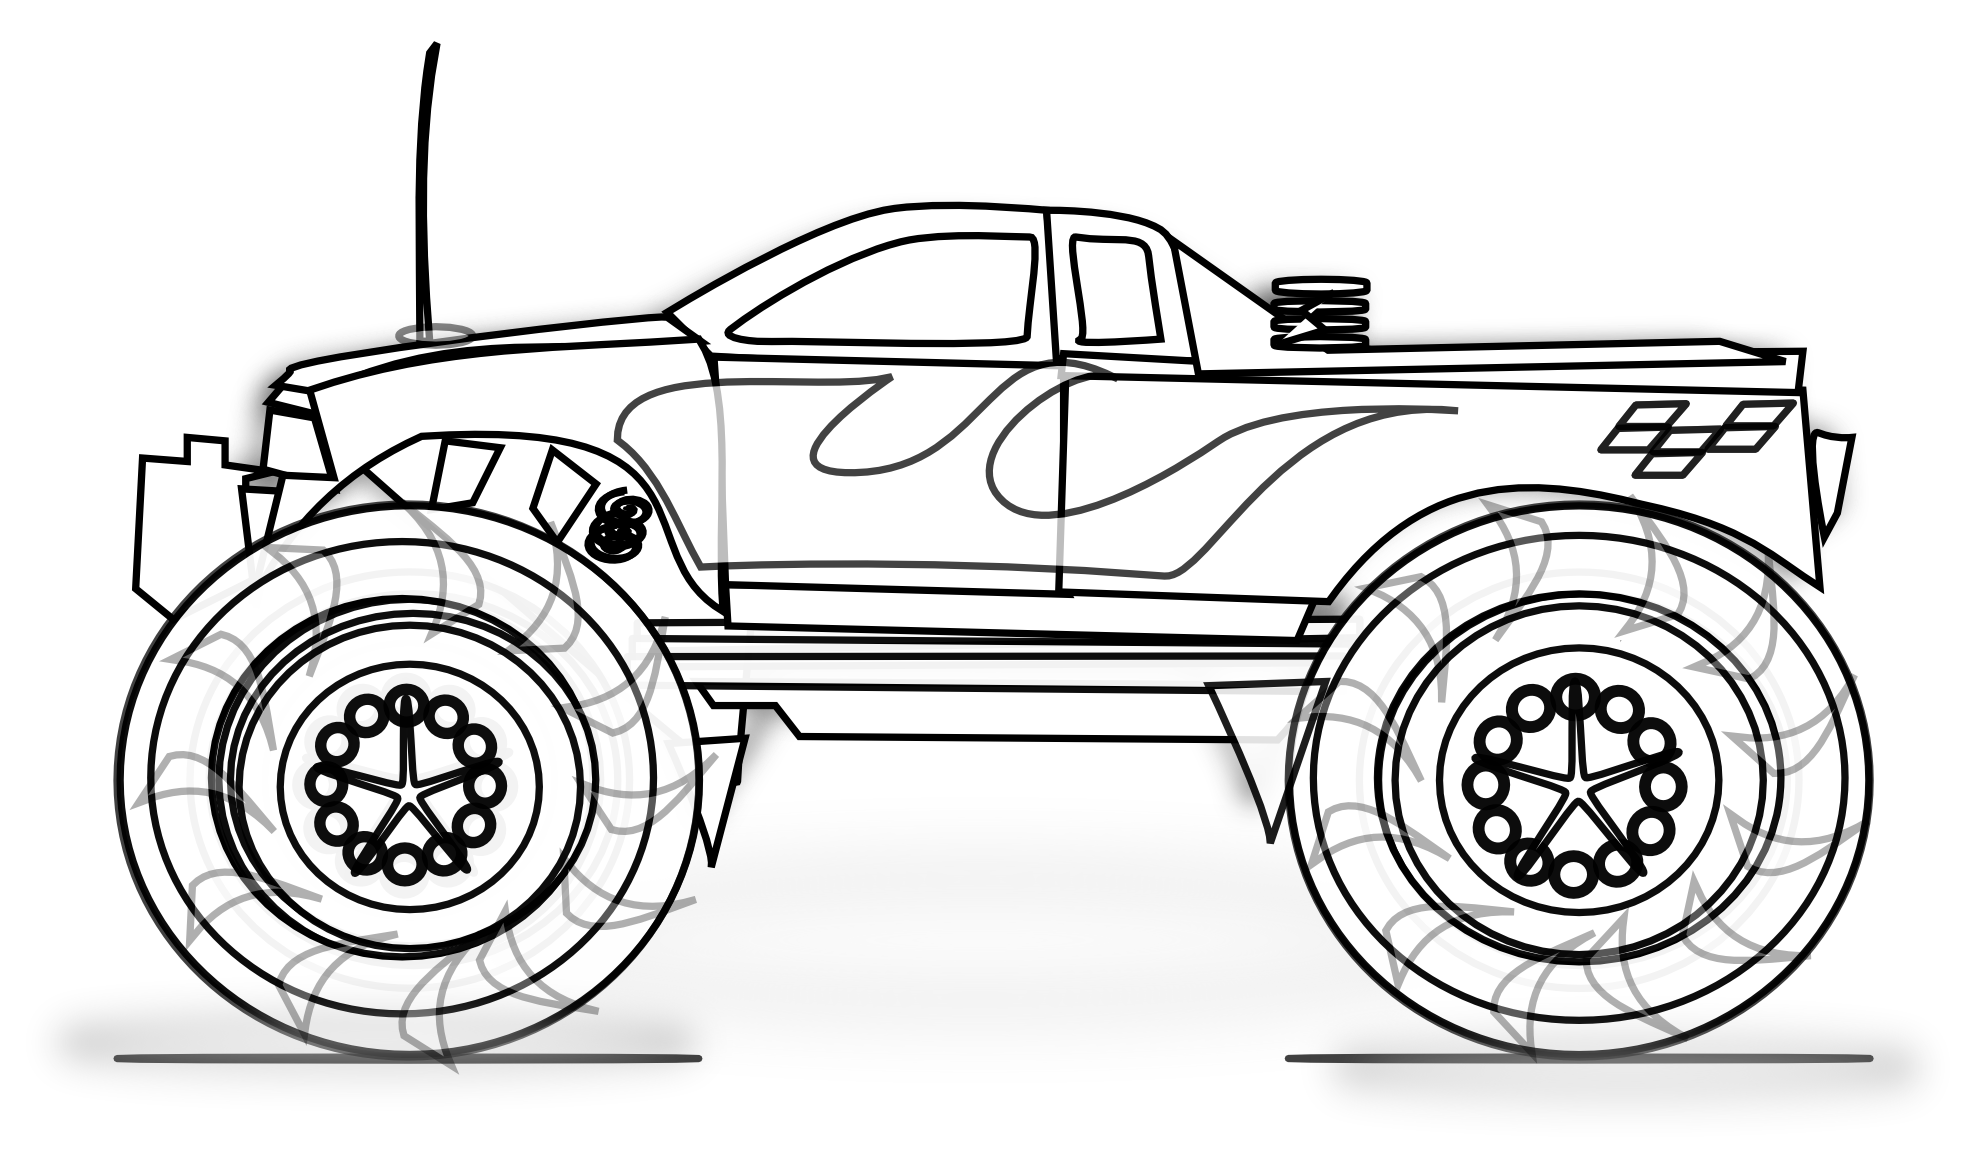 monster truck printable coloring pages - Colouring In Pages For Kids